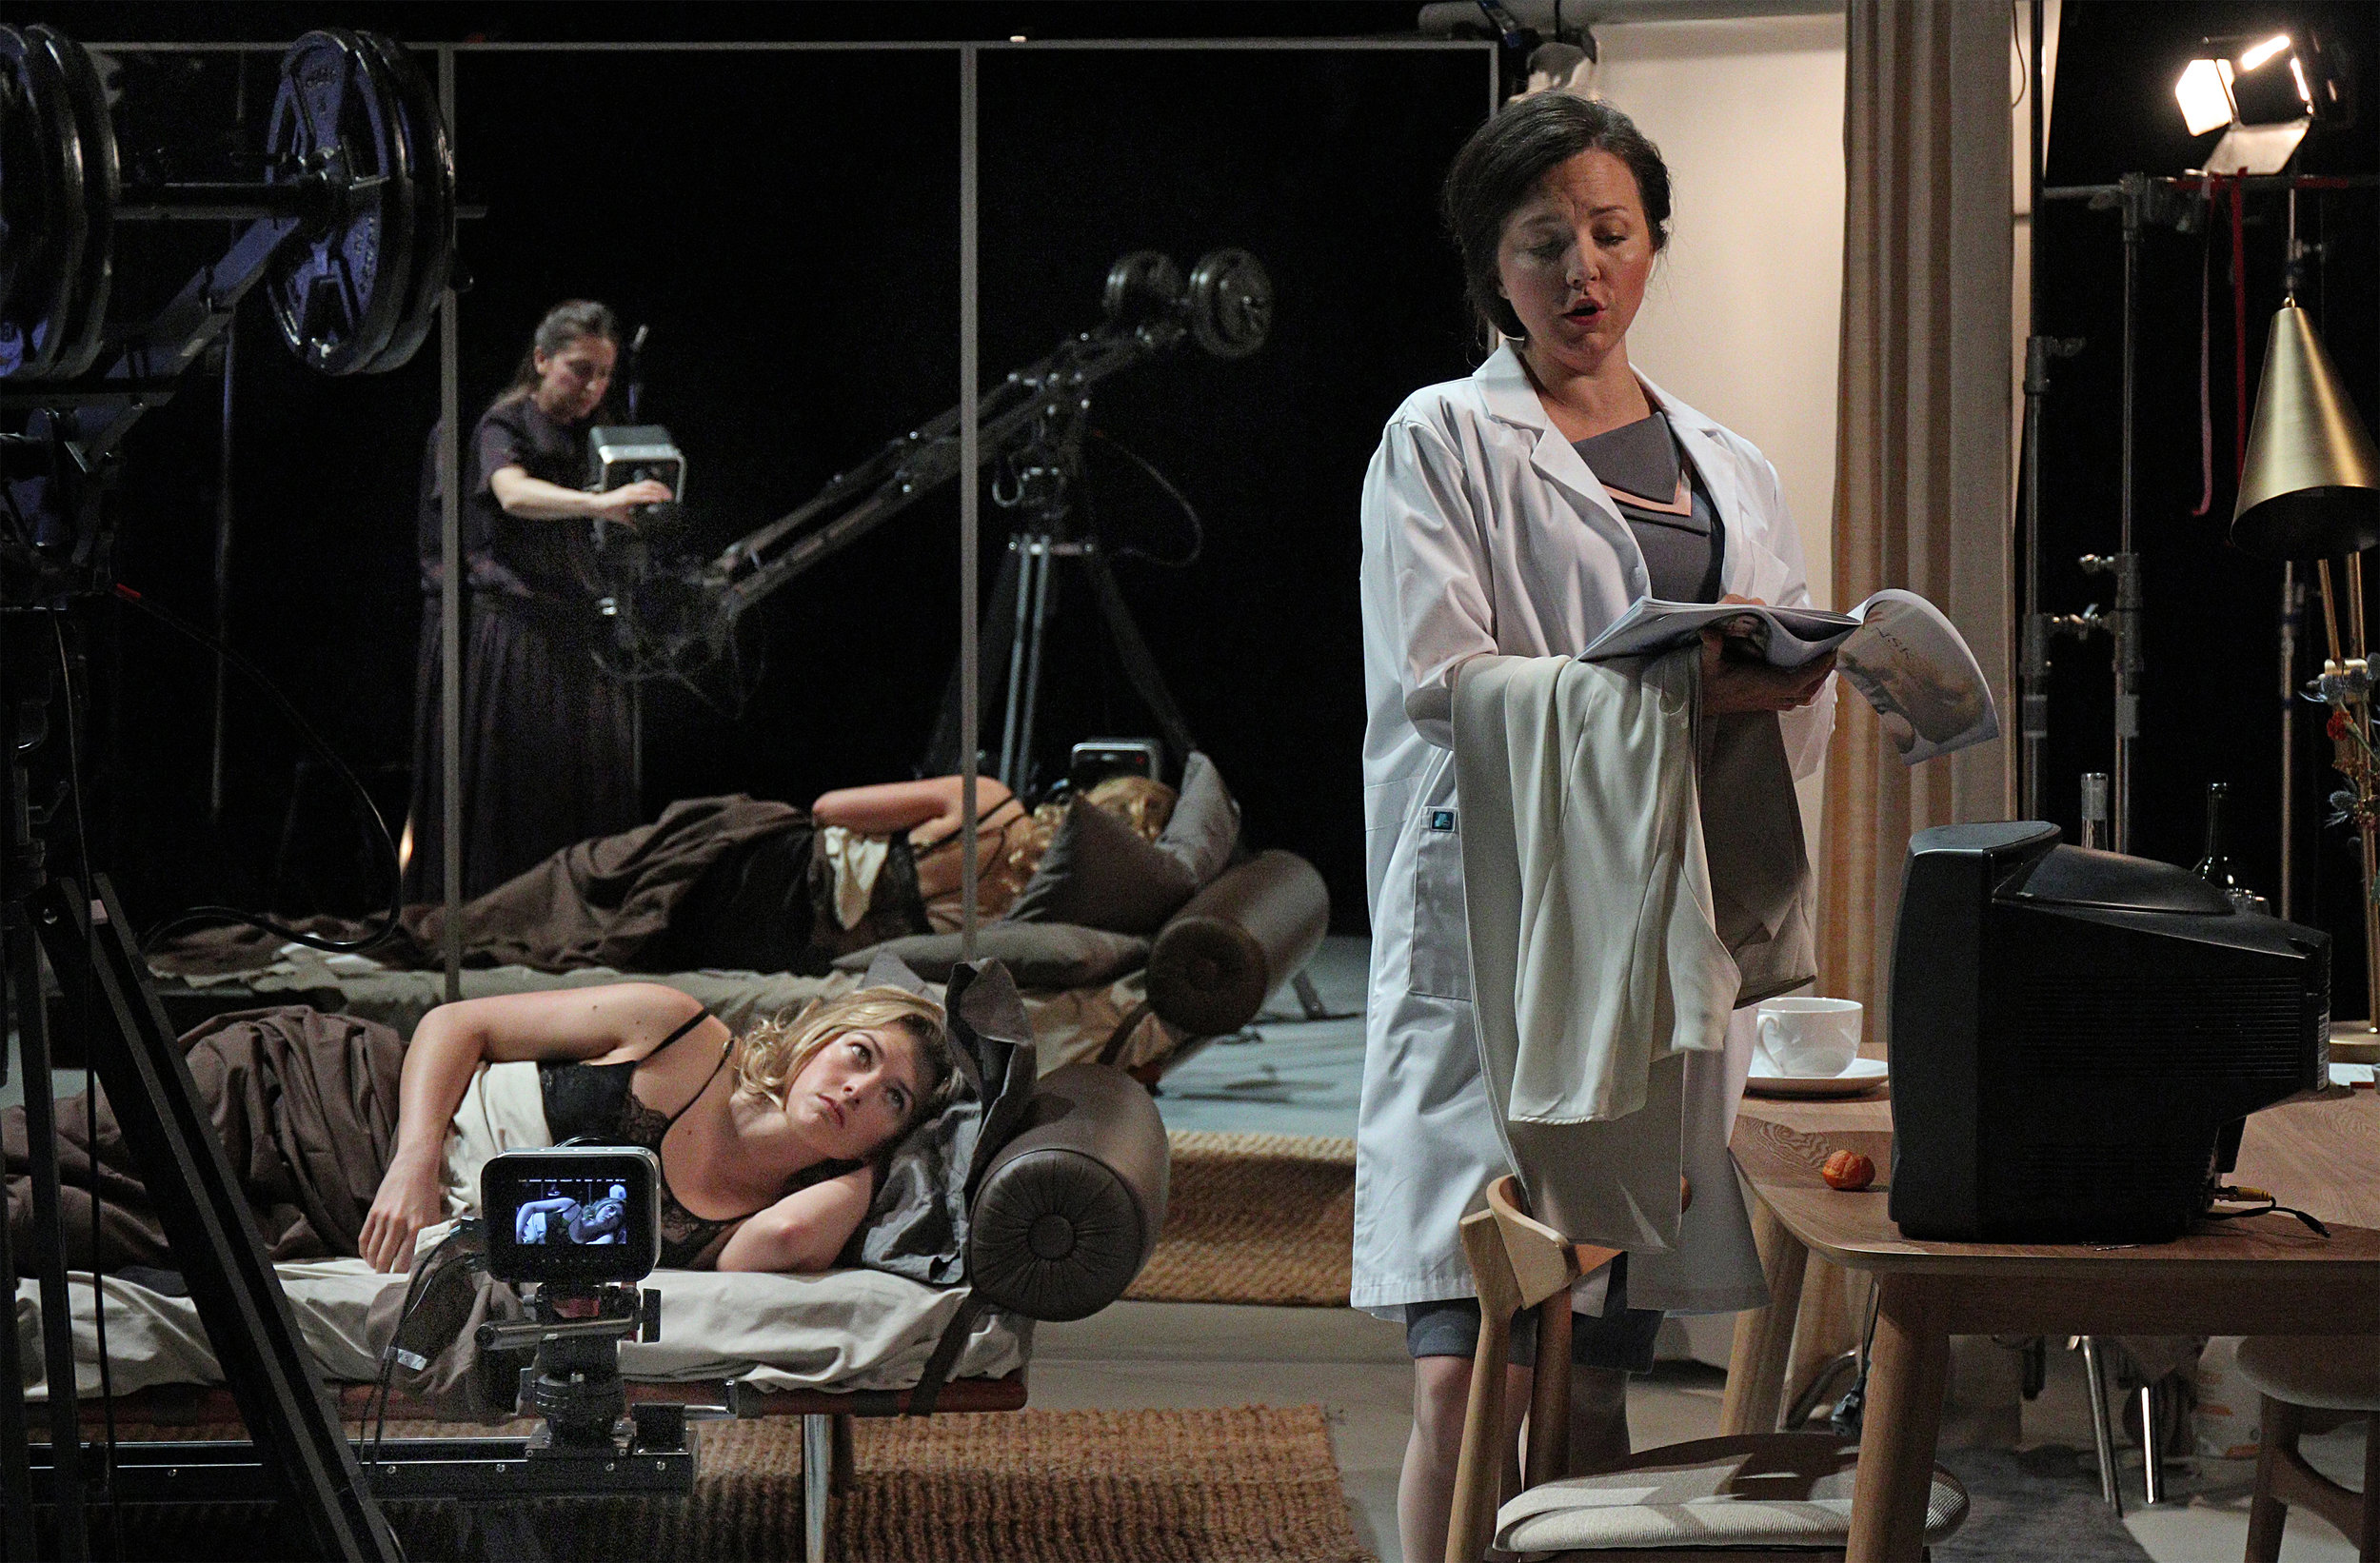 Persona - after the film by Ingmar Bergman, opens in November at LA Opera / Redcat